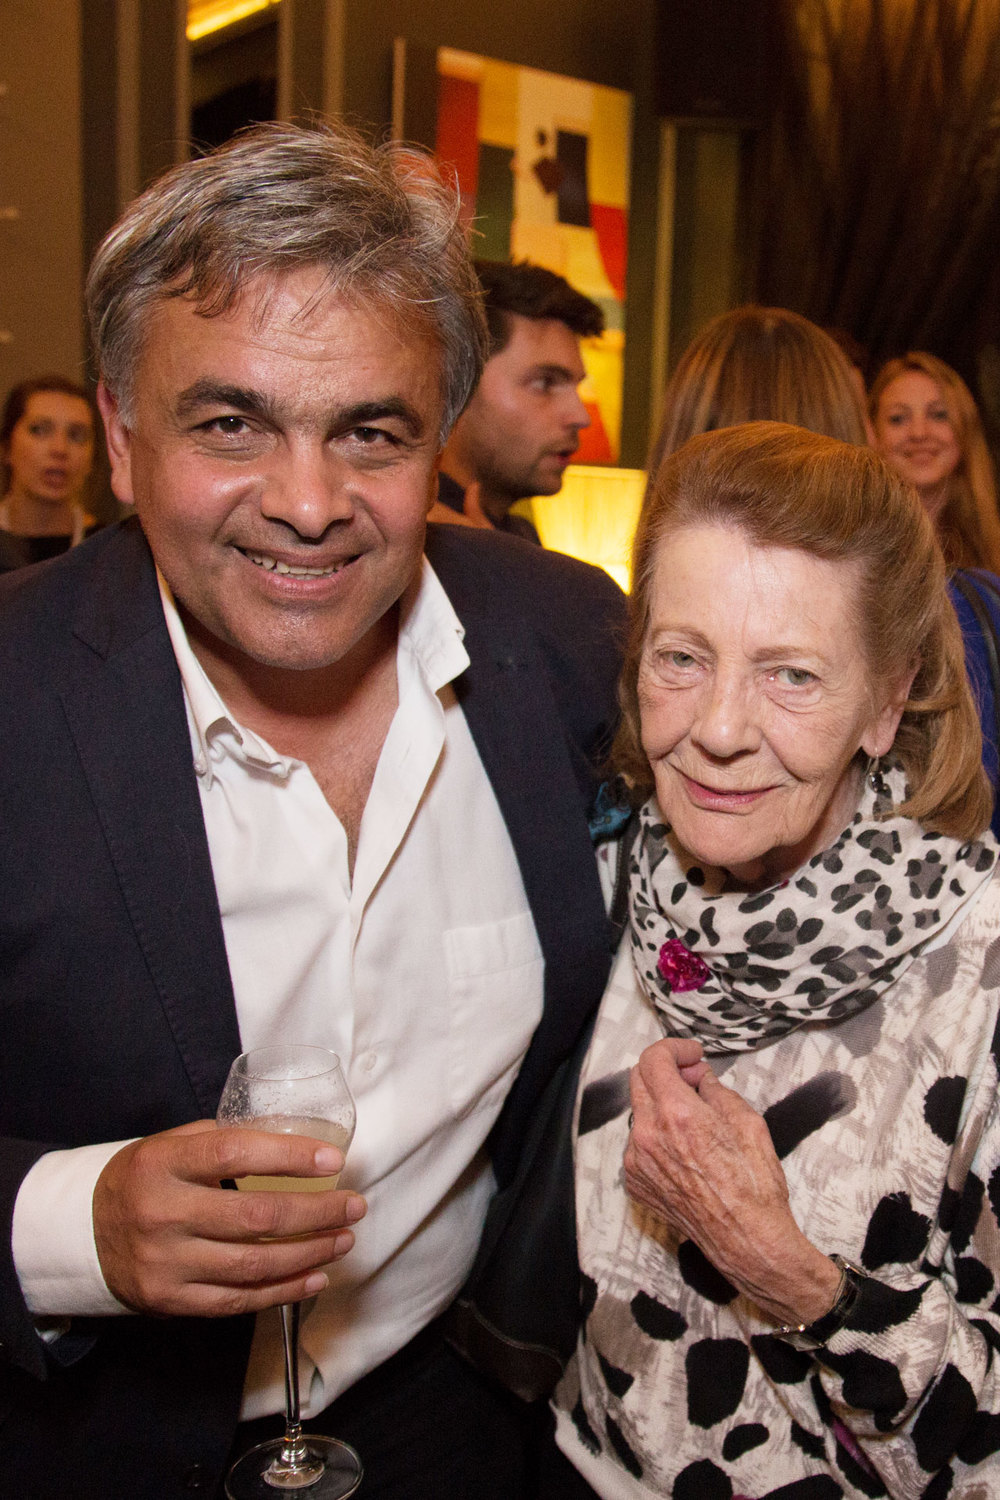 Baldassare-Larizza-Mary-Fox-Lynton-tatler-26sep14_Michael-Newington-Gray_b.jpg